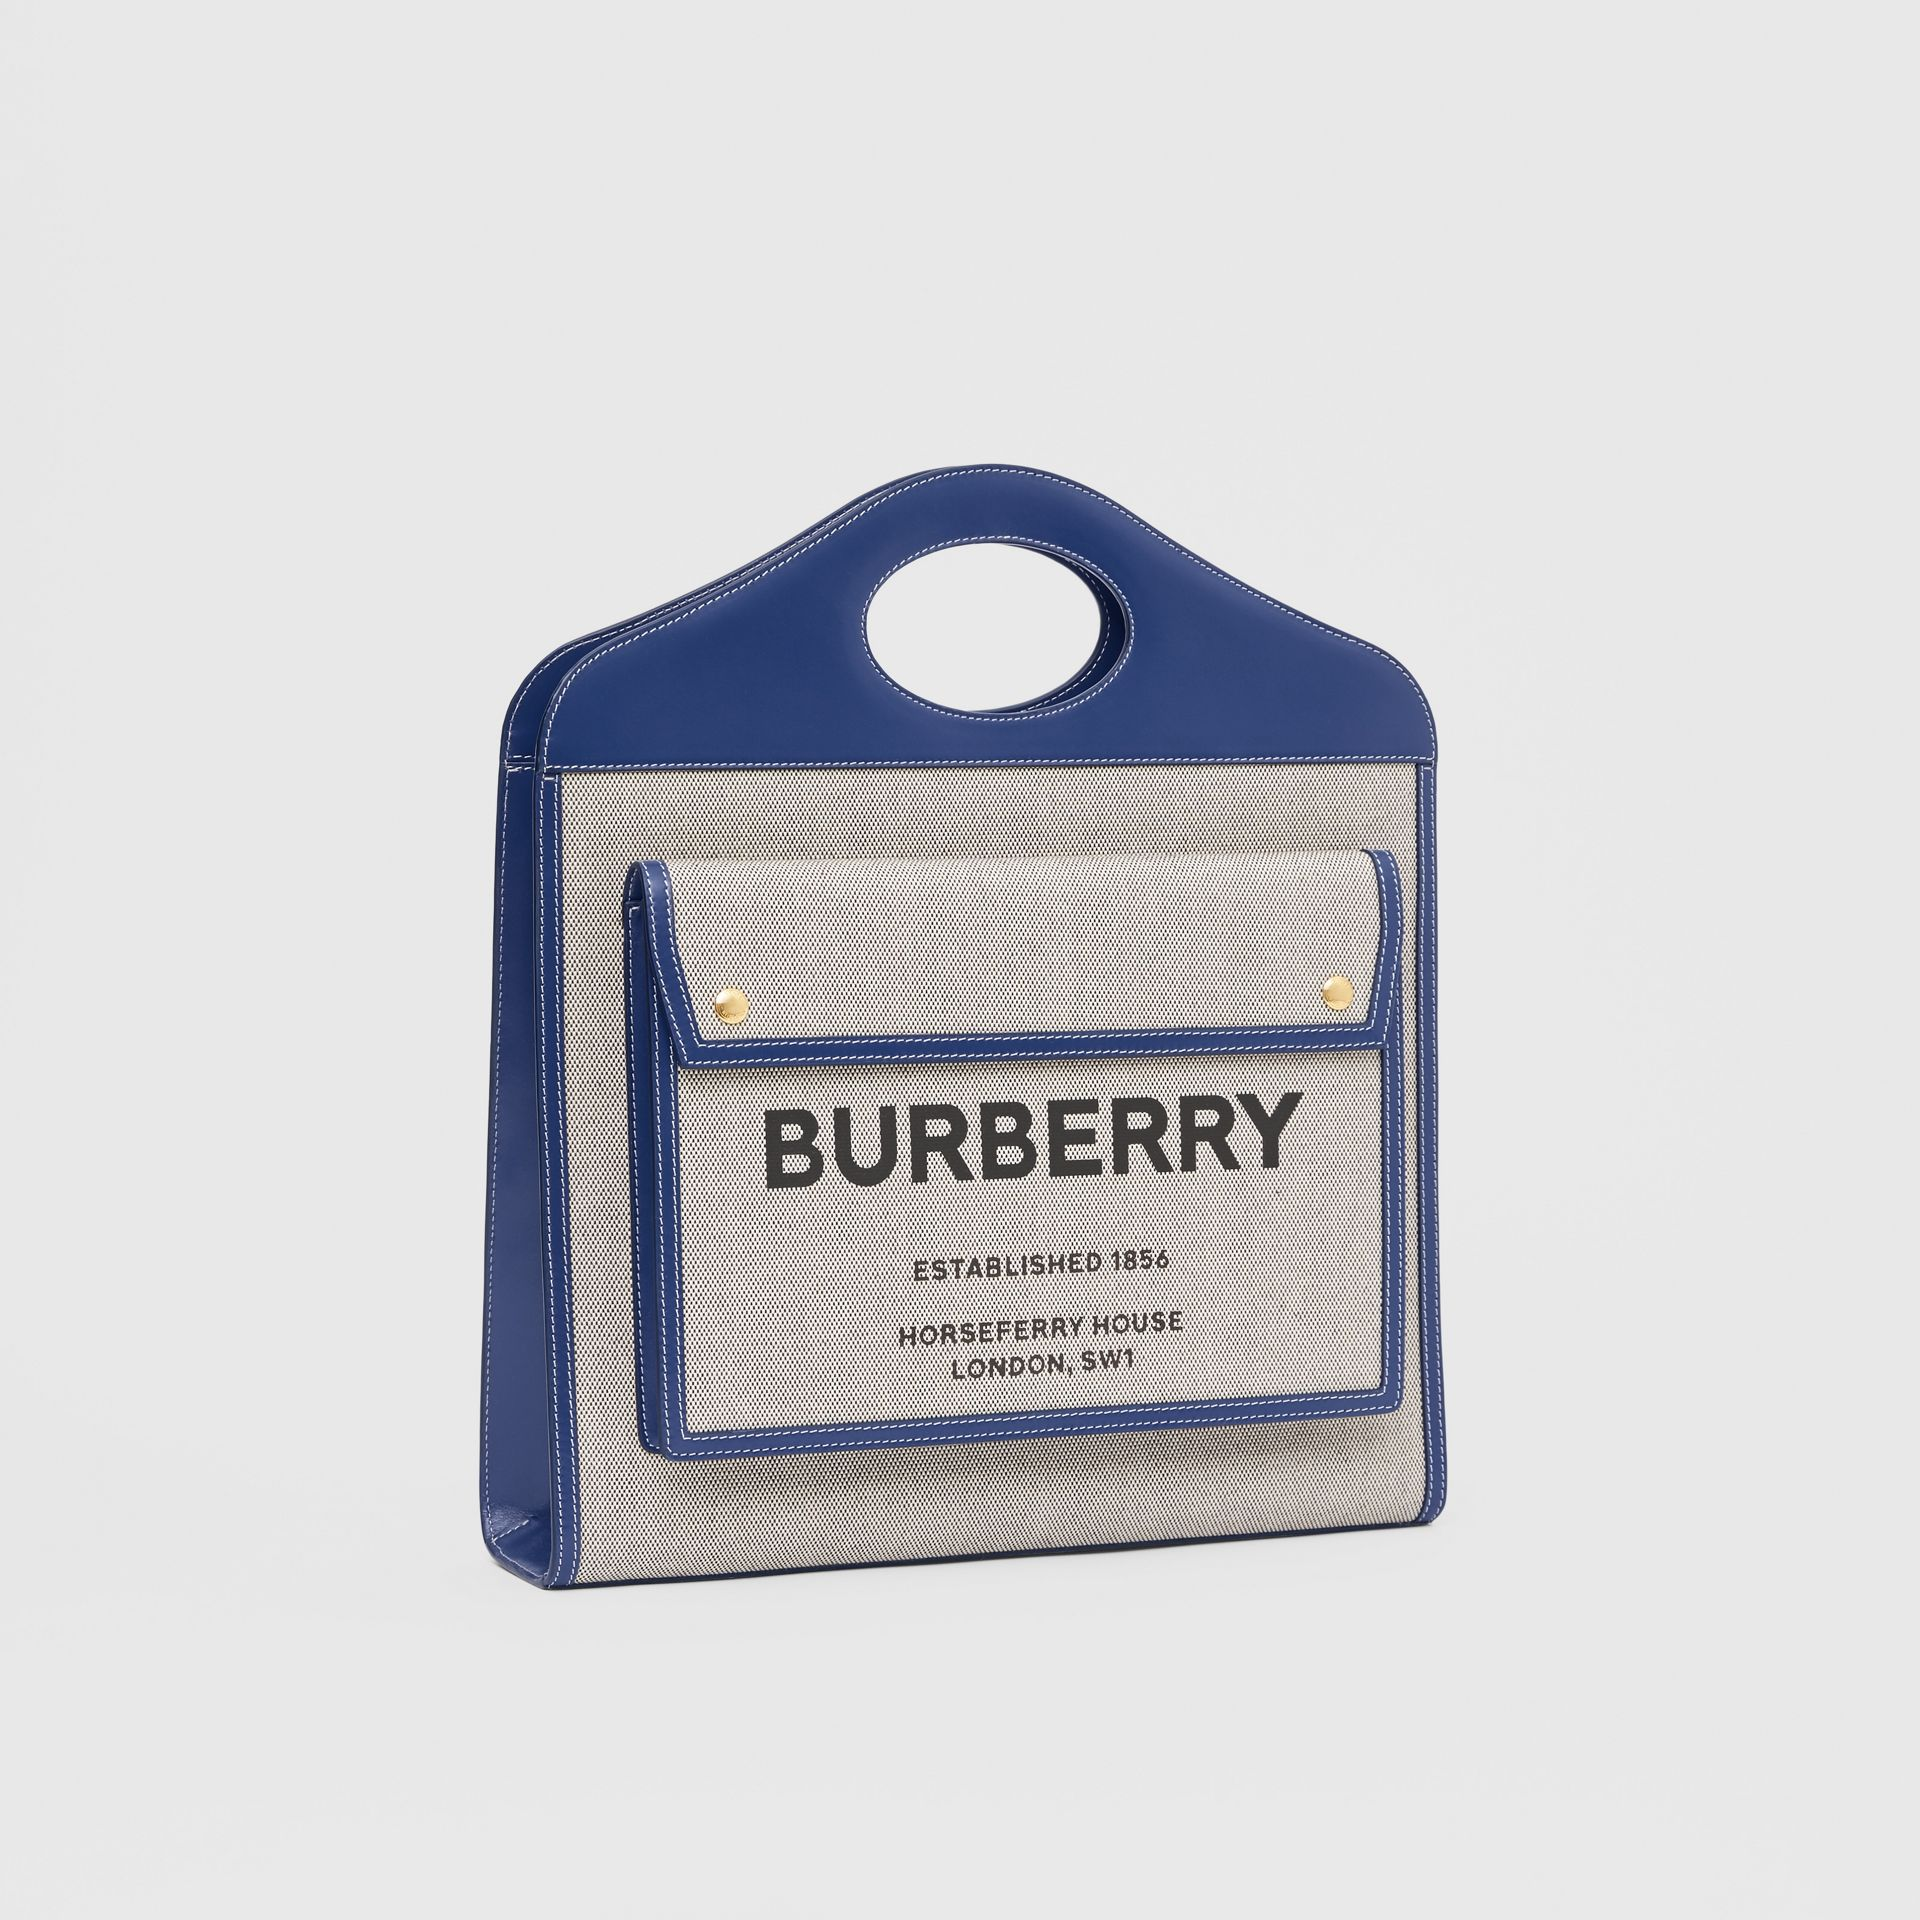 Medium Two-tone Canvas and Leather Pocket Bag in Ink Navy - Women | Burberry - gallery image 6